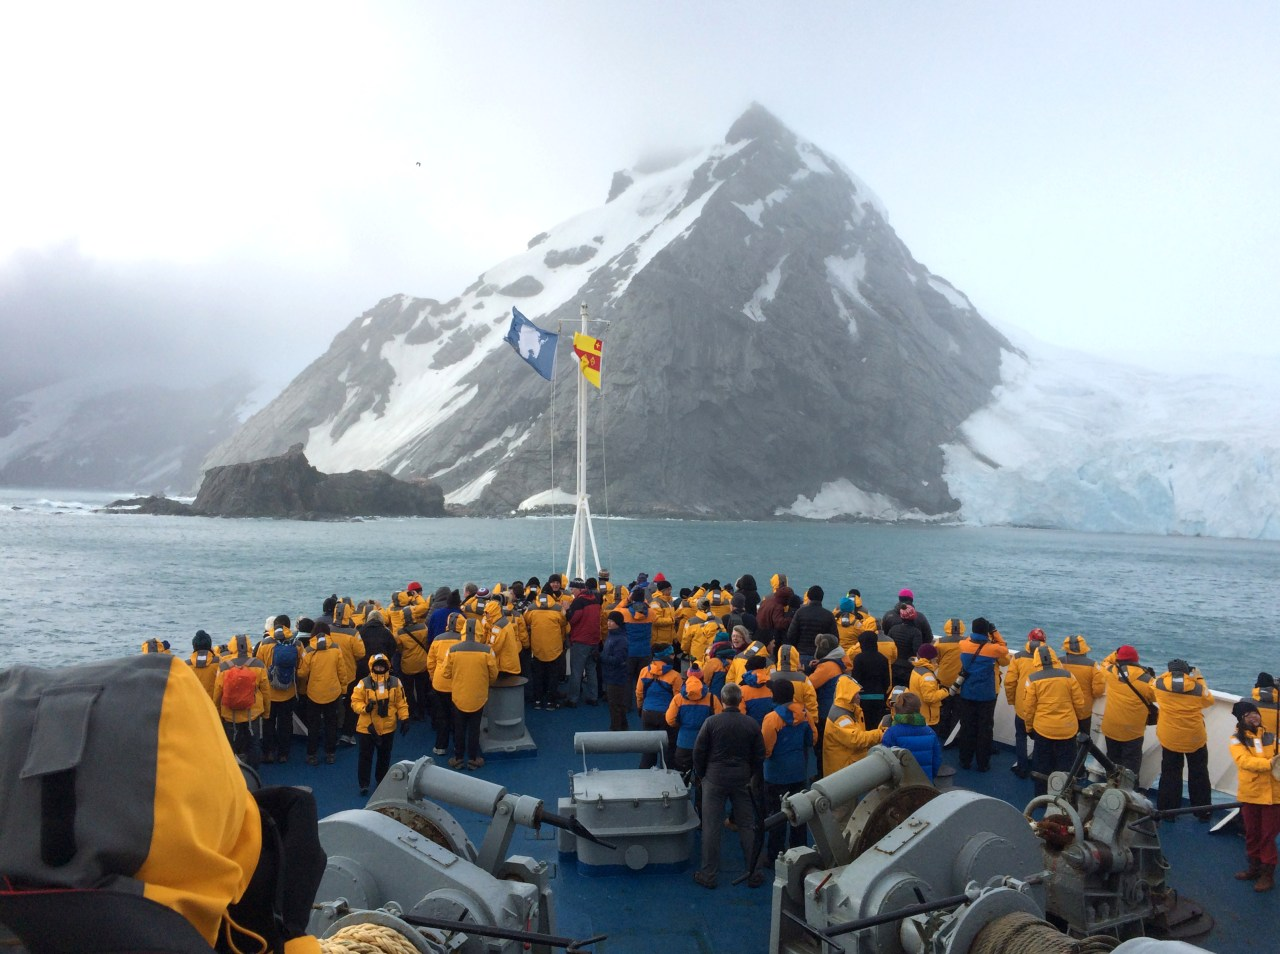 Passengers gather to observe the pittance of rock on Elephant Island.